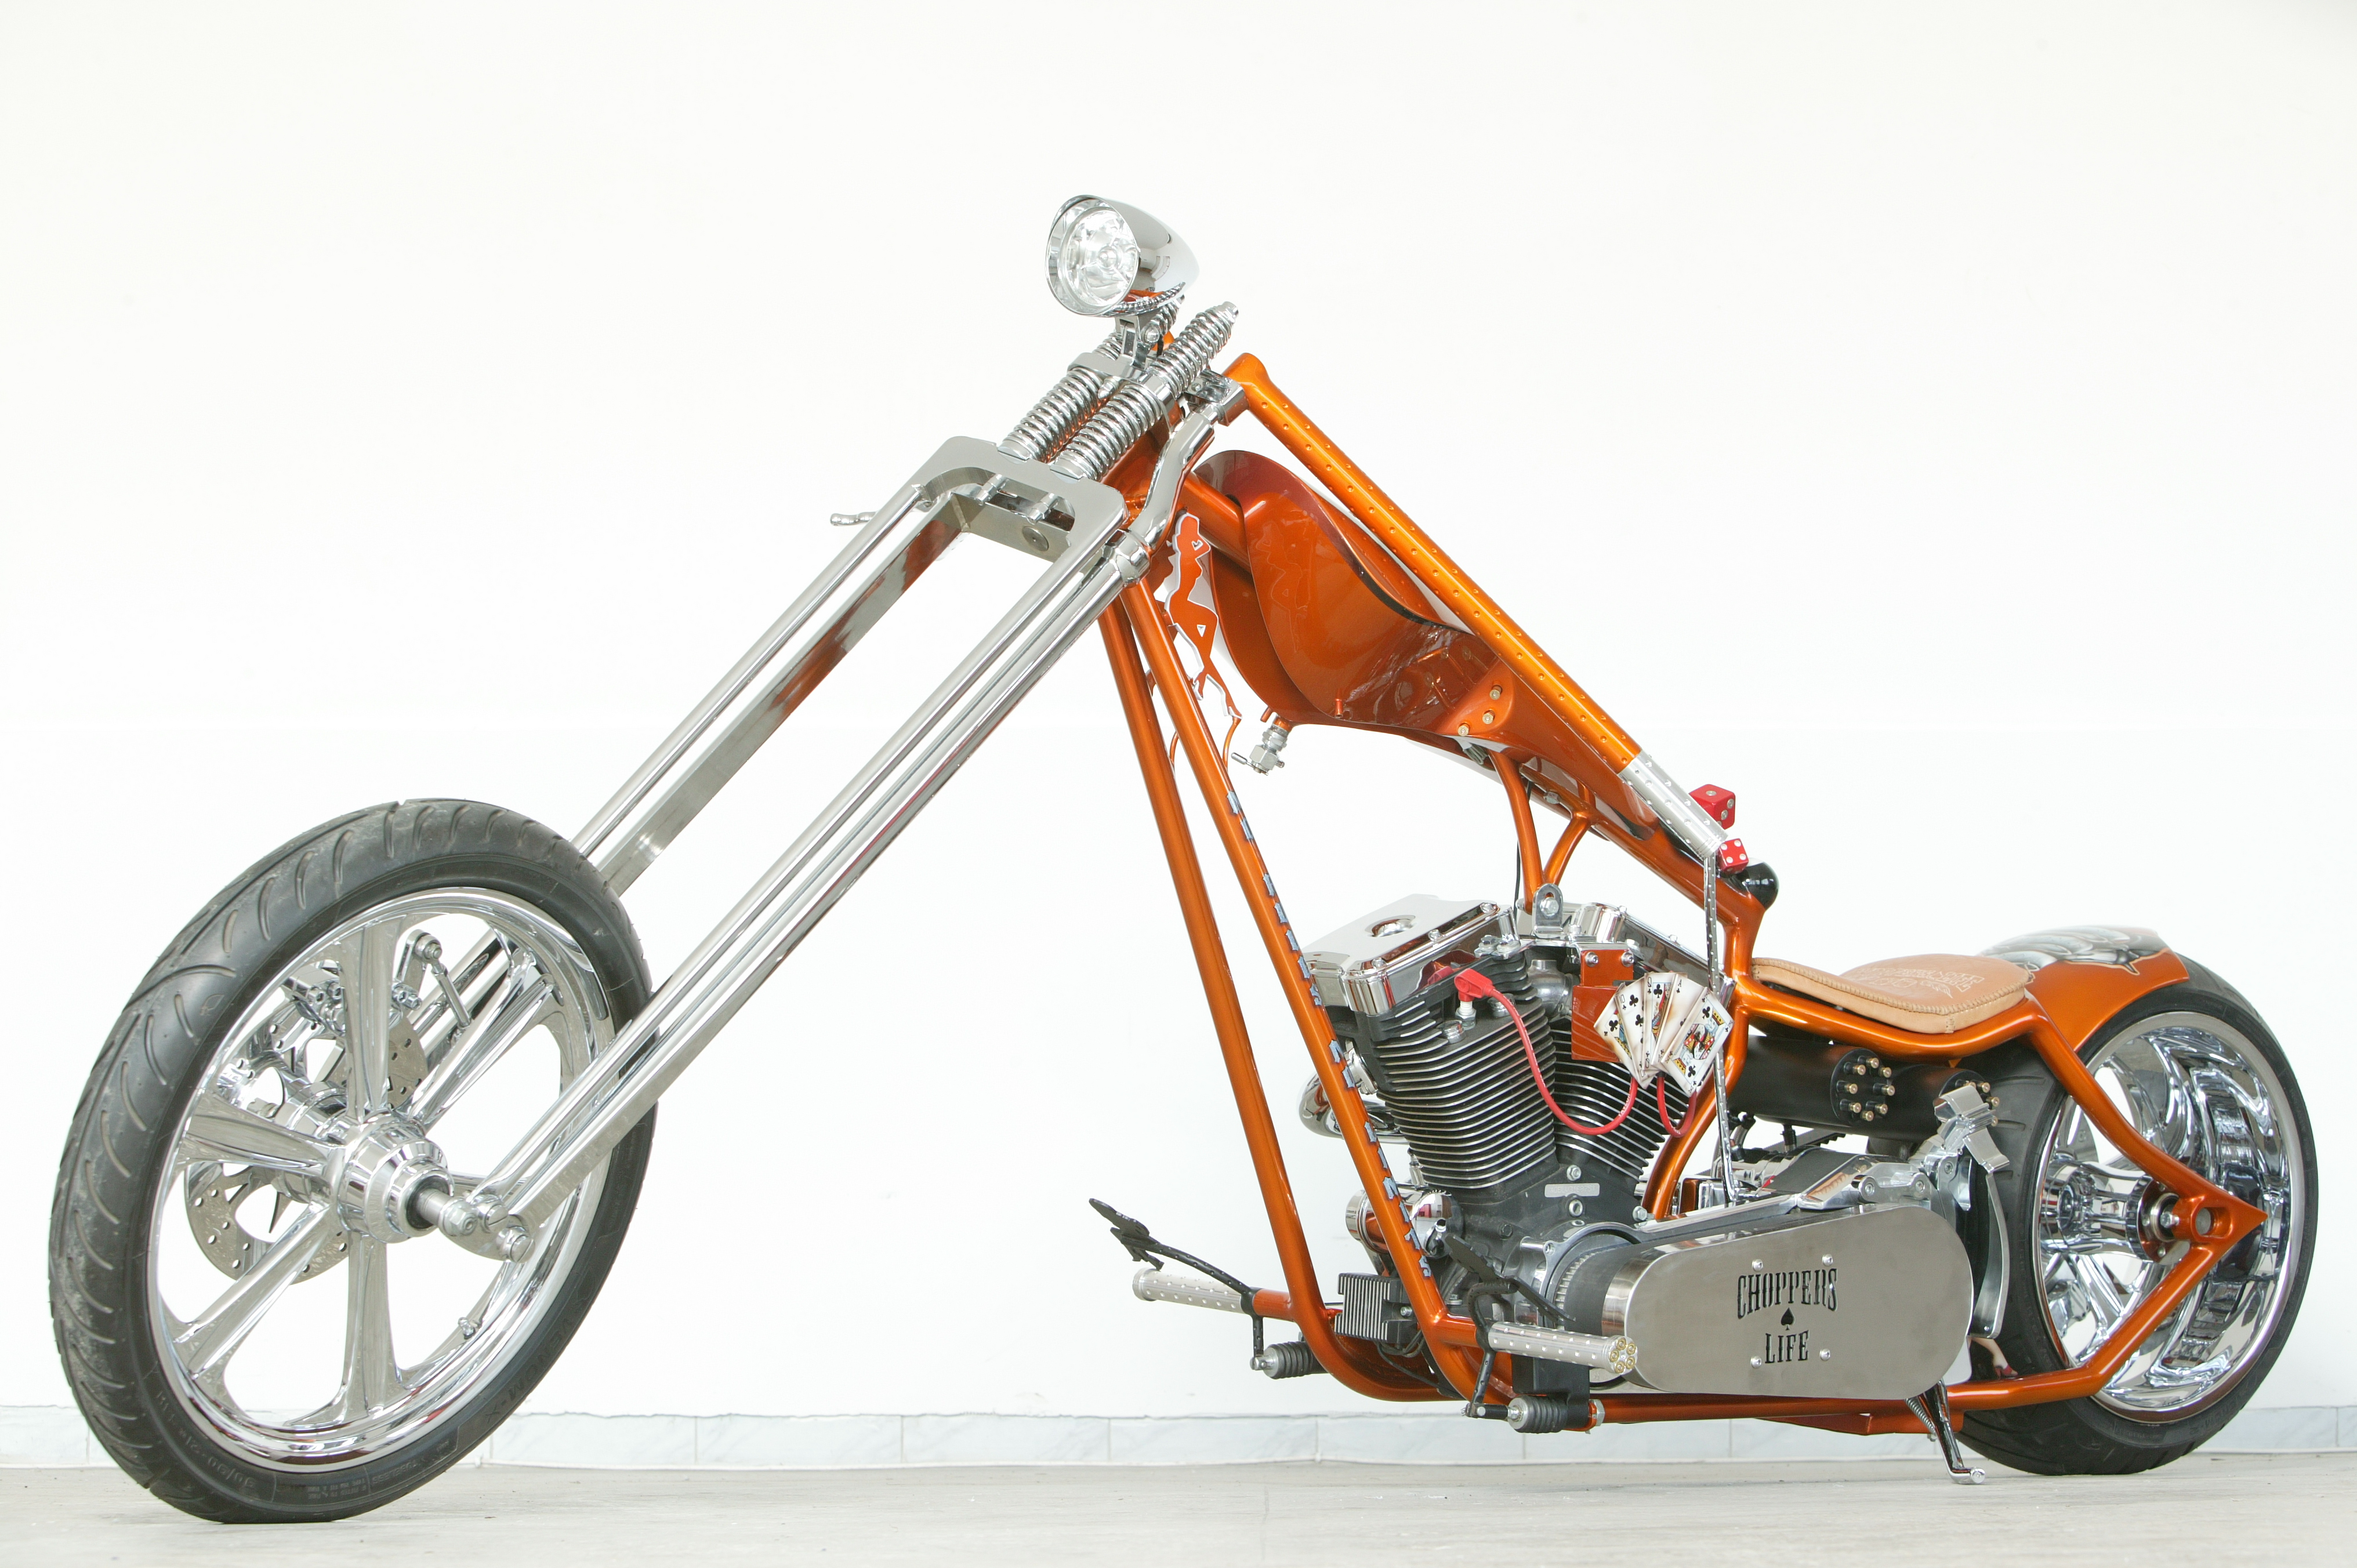 Custom Street Bike Chopper 4064 x 2704 · 4199 kB · jpeg